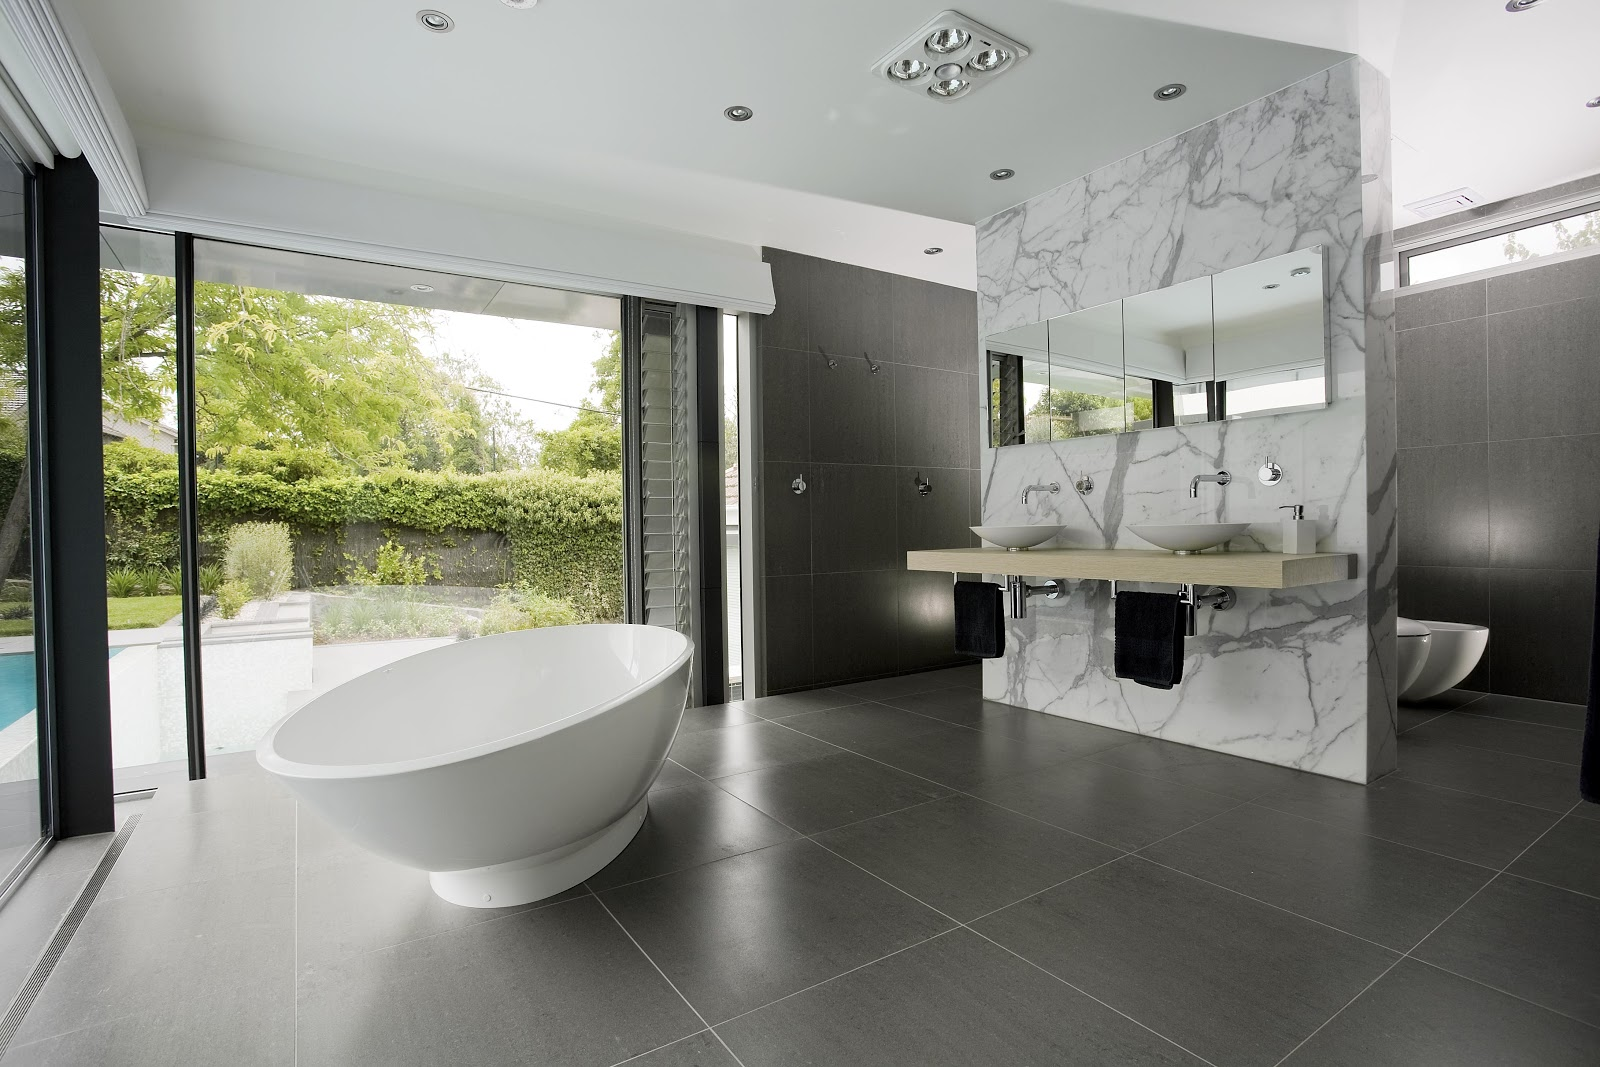 Minosa modern bathrooms the search for something different Design bathroom online australia